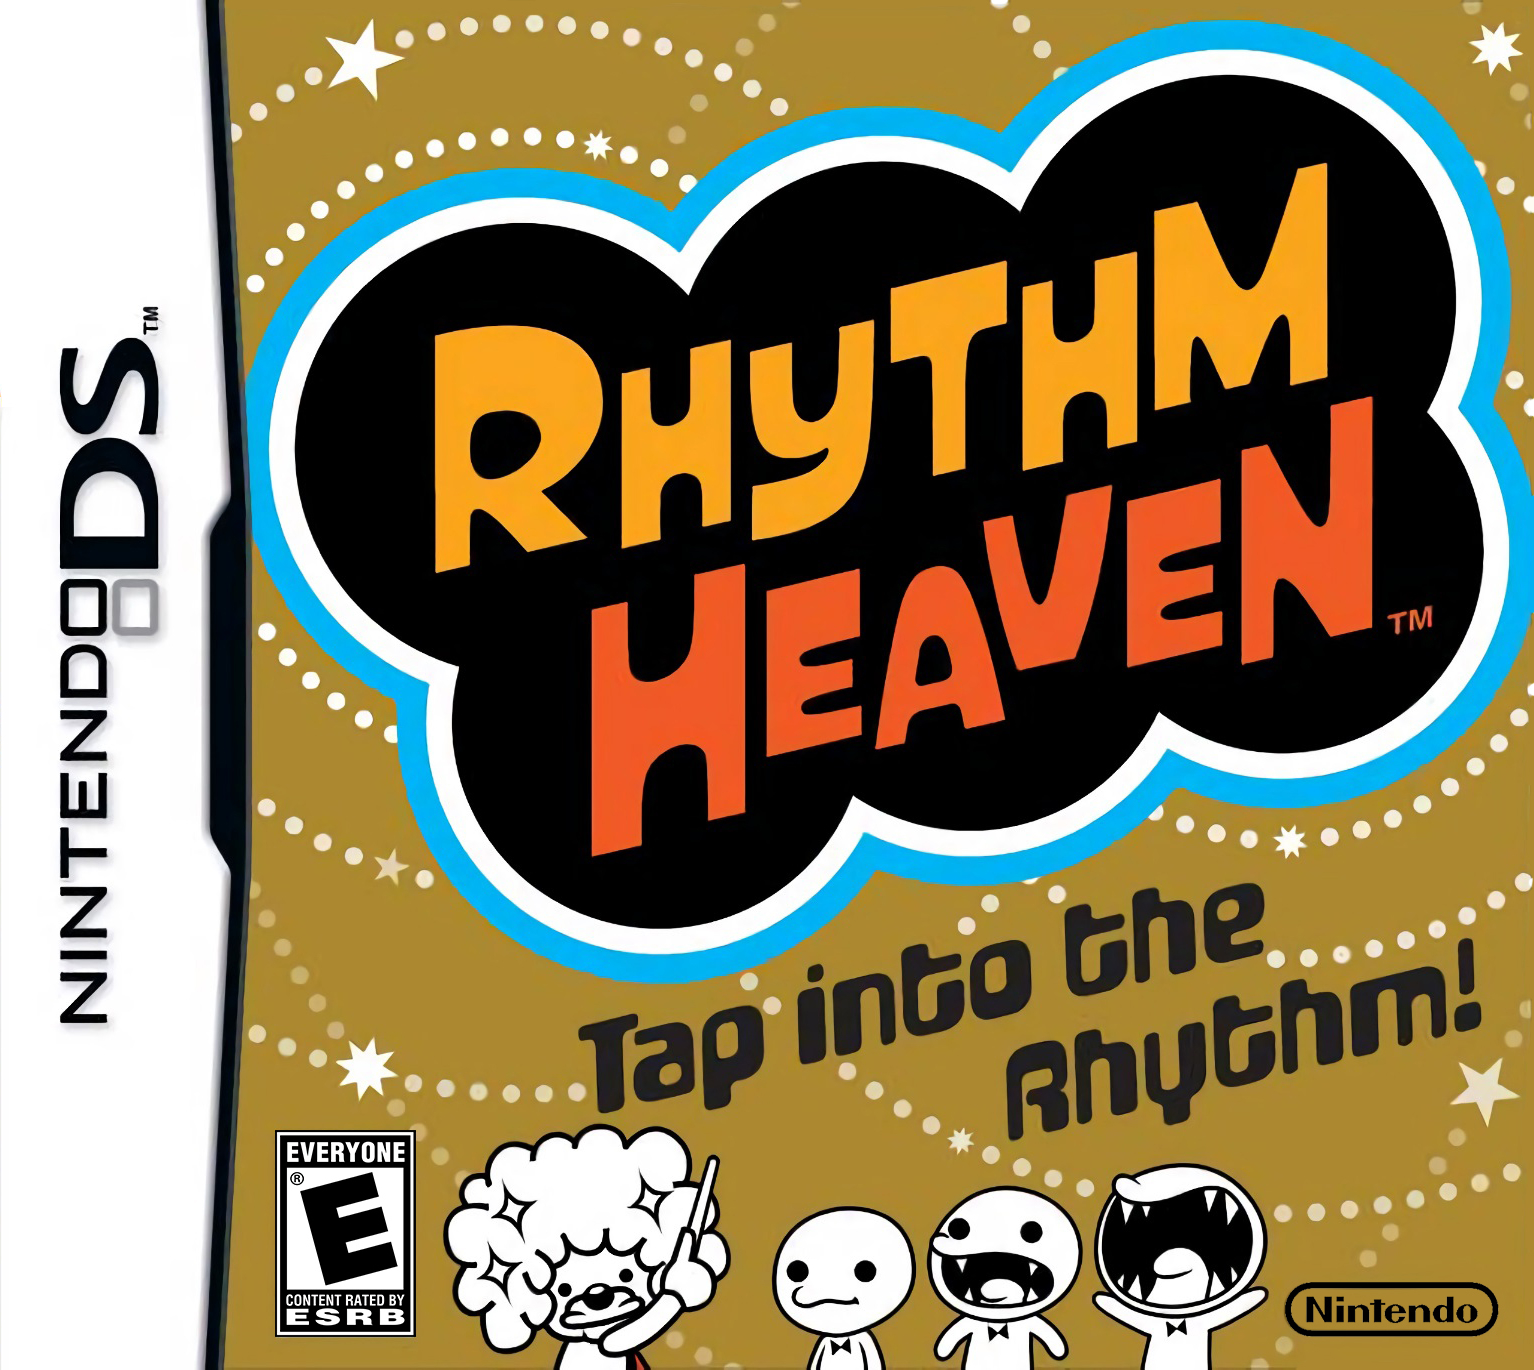 Rhythm_heaven_box_art.jpg